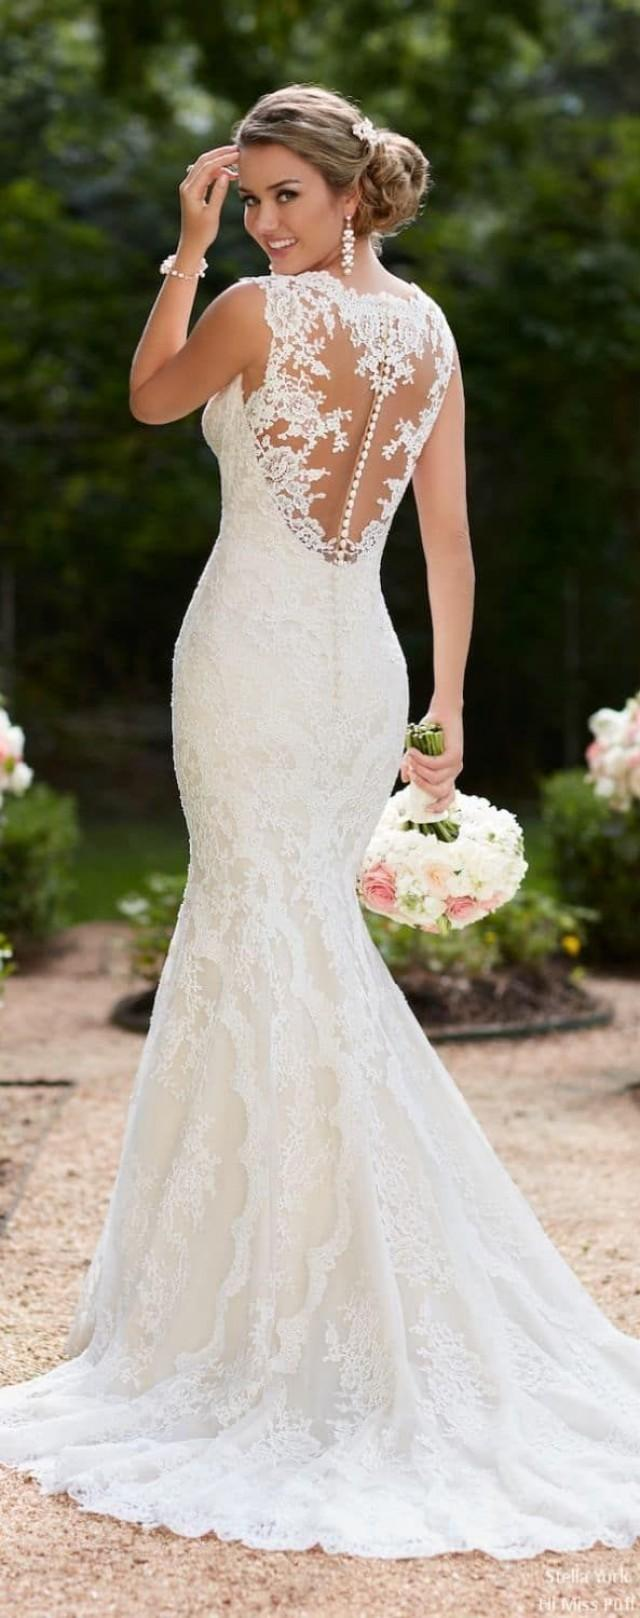 Colorful Wedding Dresses In Ny Ensign - Colorful Wedding Dress Ideas ...